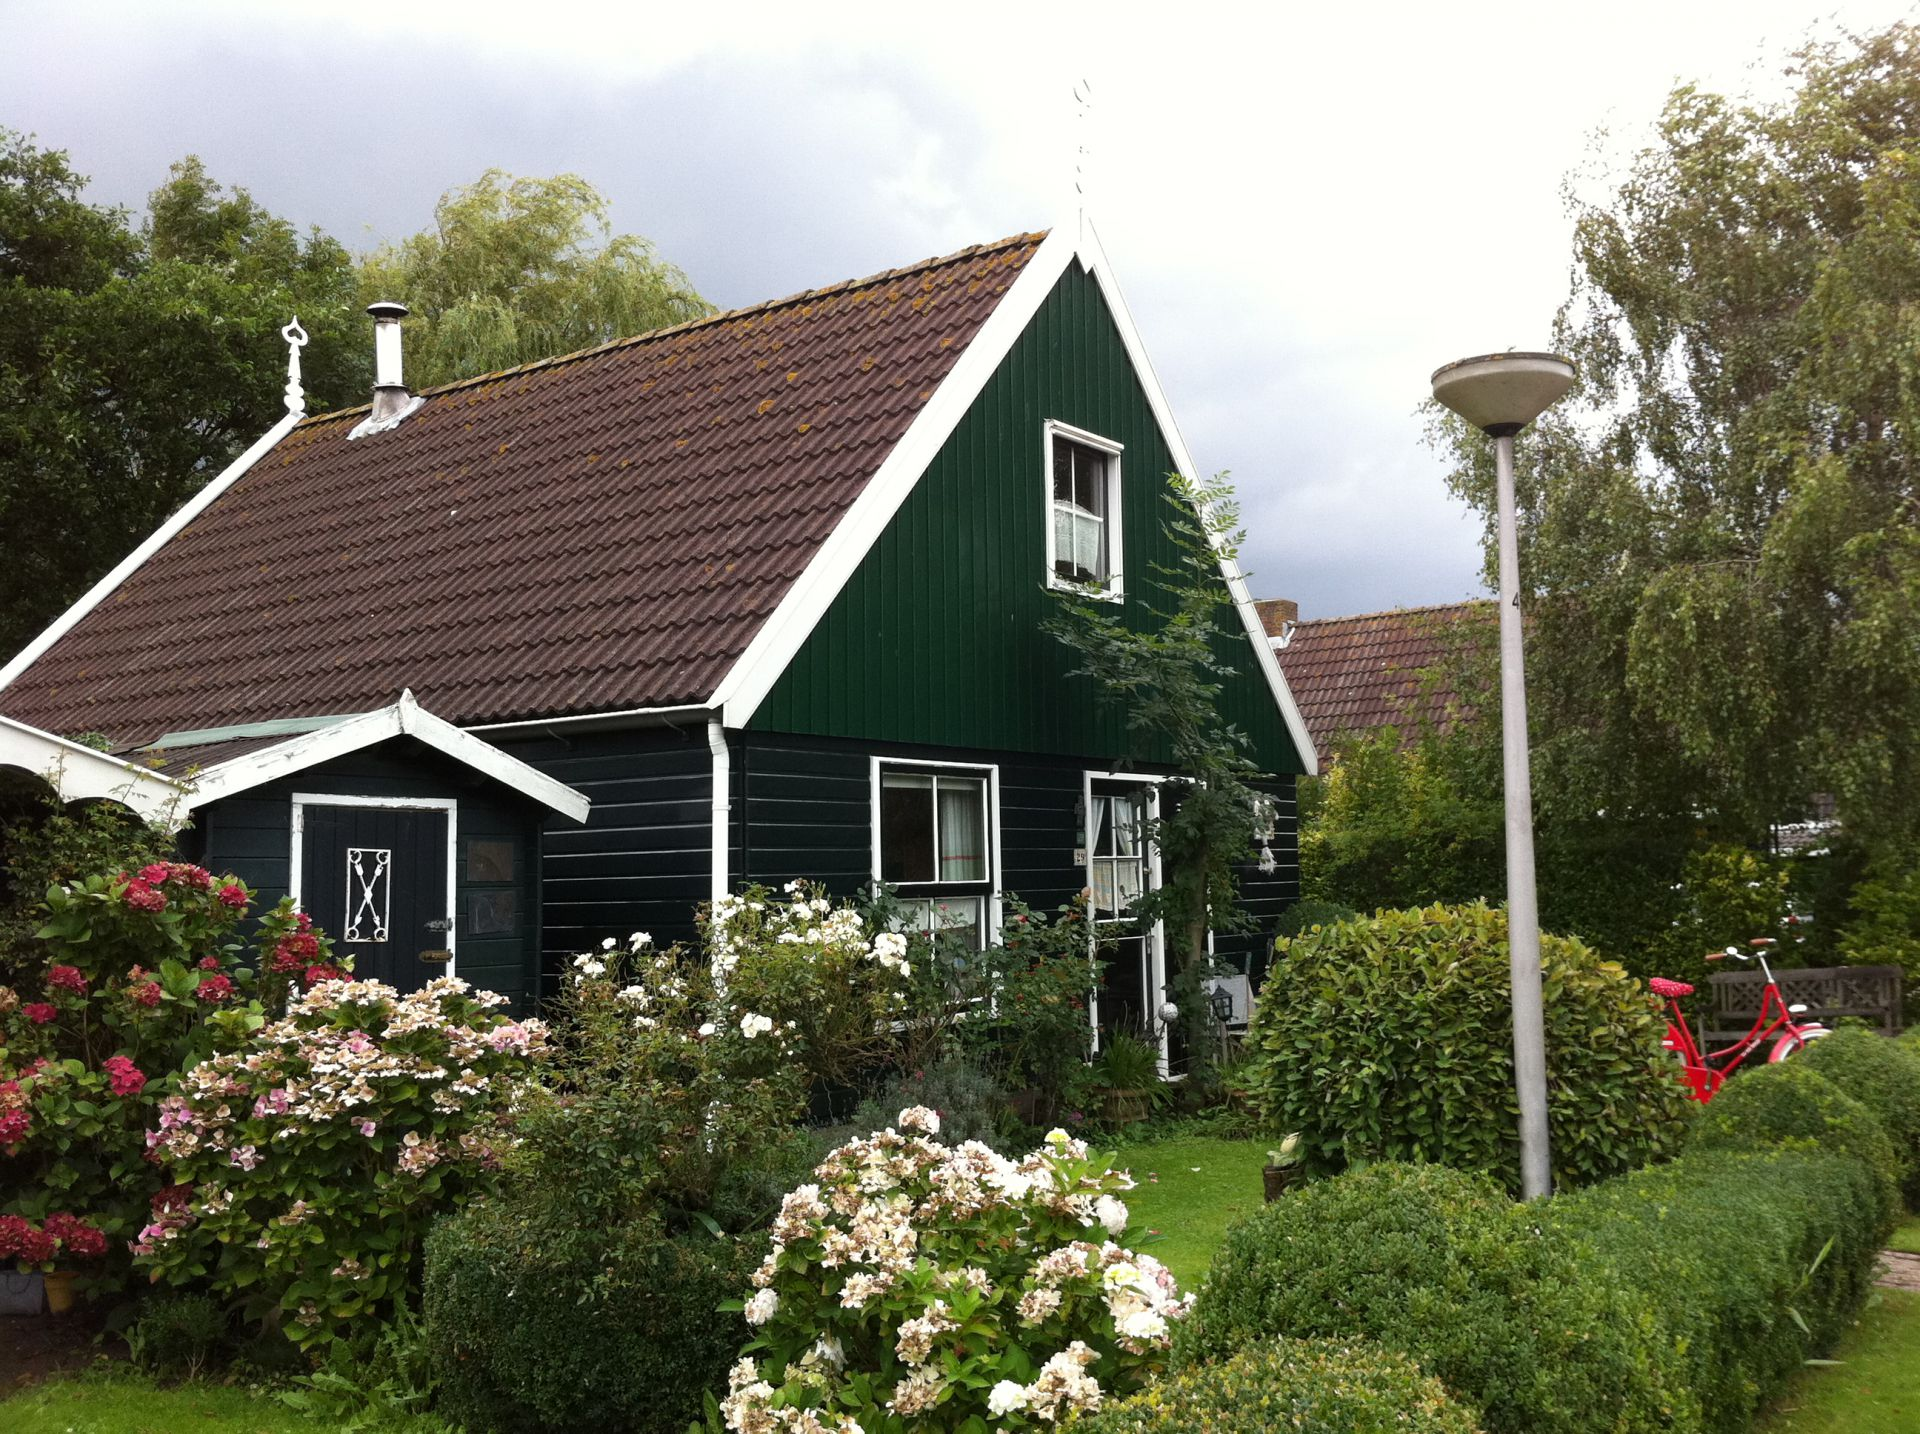 Ferienhaus Mit Pool La Gomera Sea Pool Garden Amsterdam Pay Bas Netherlands Holland Alkmaar